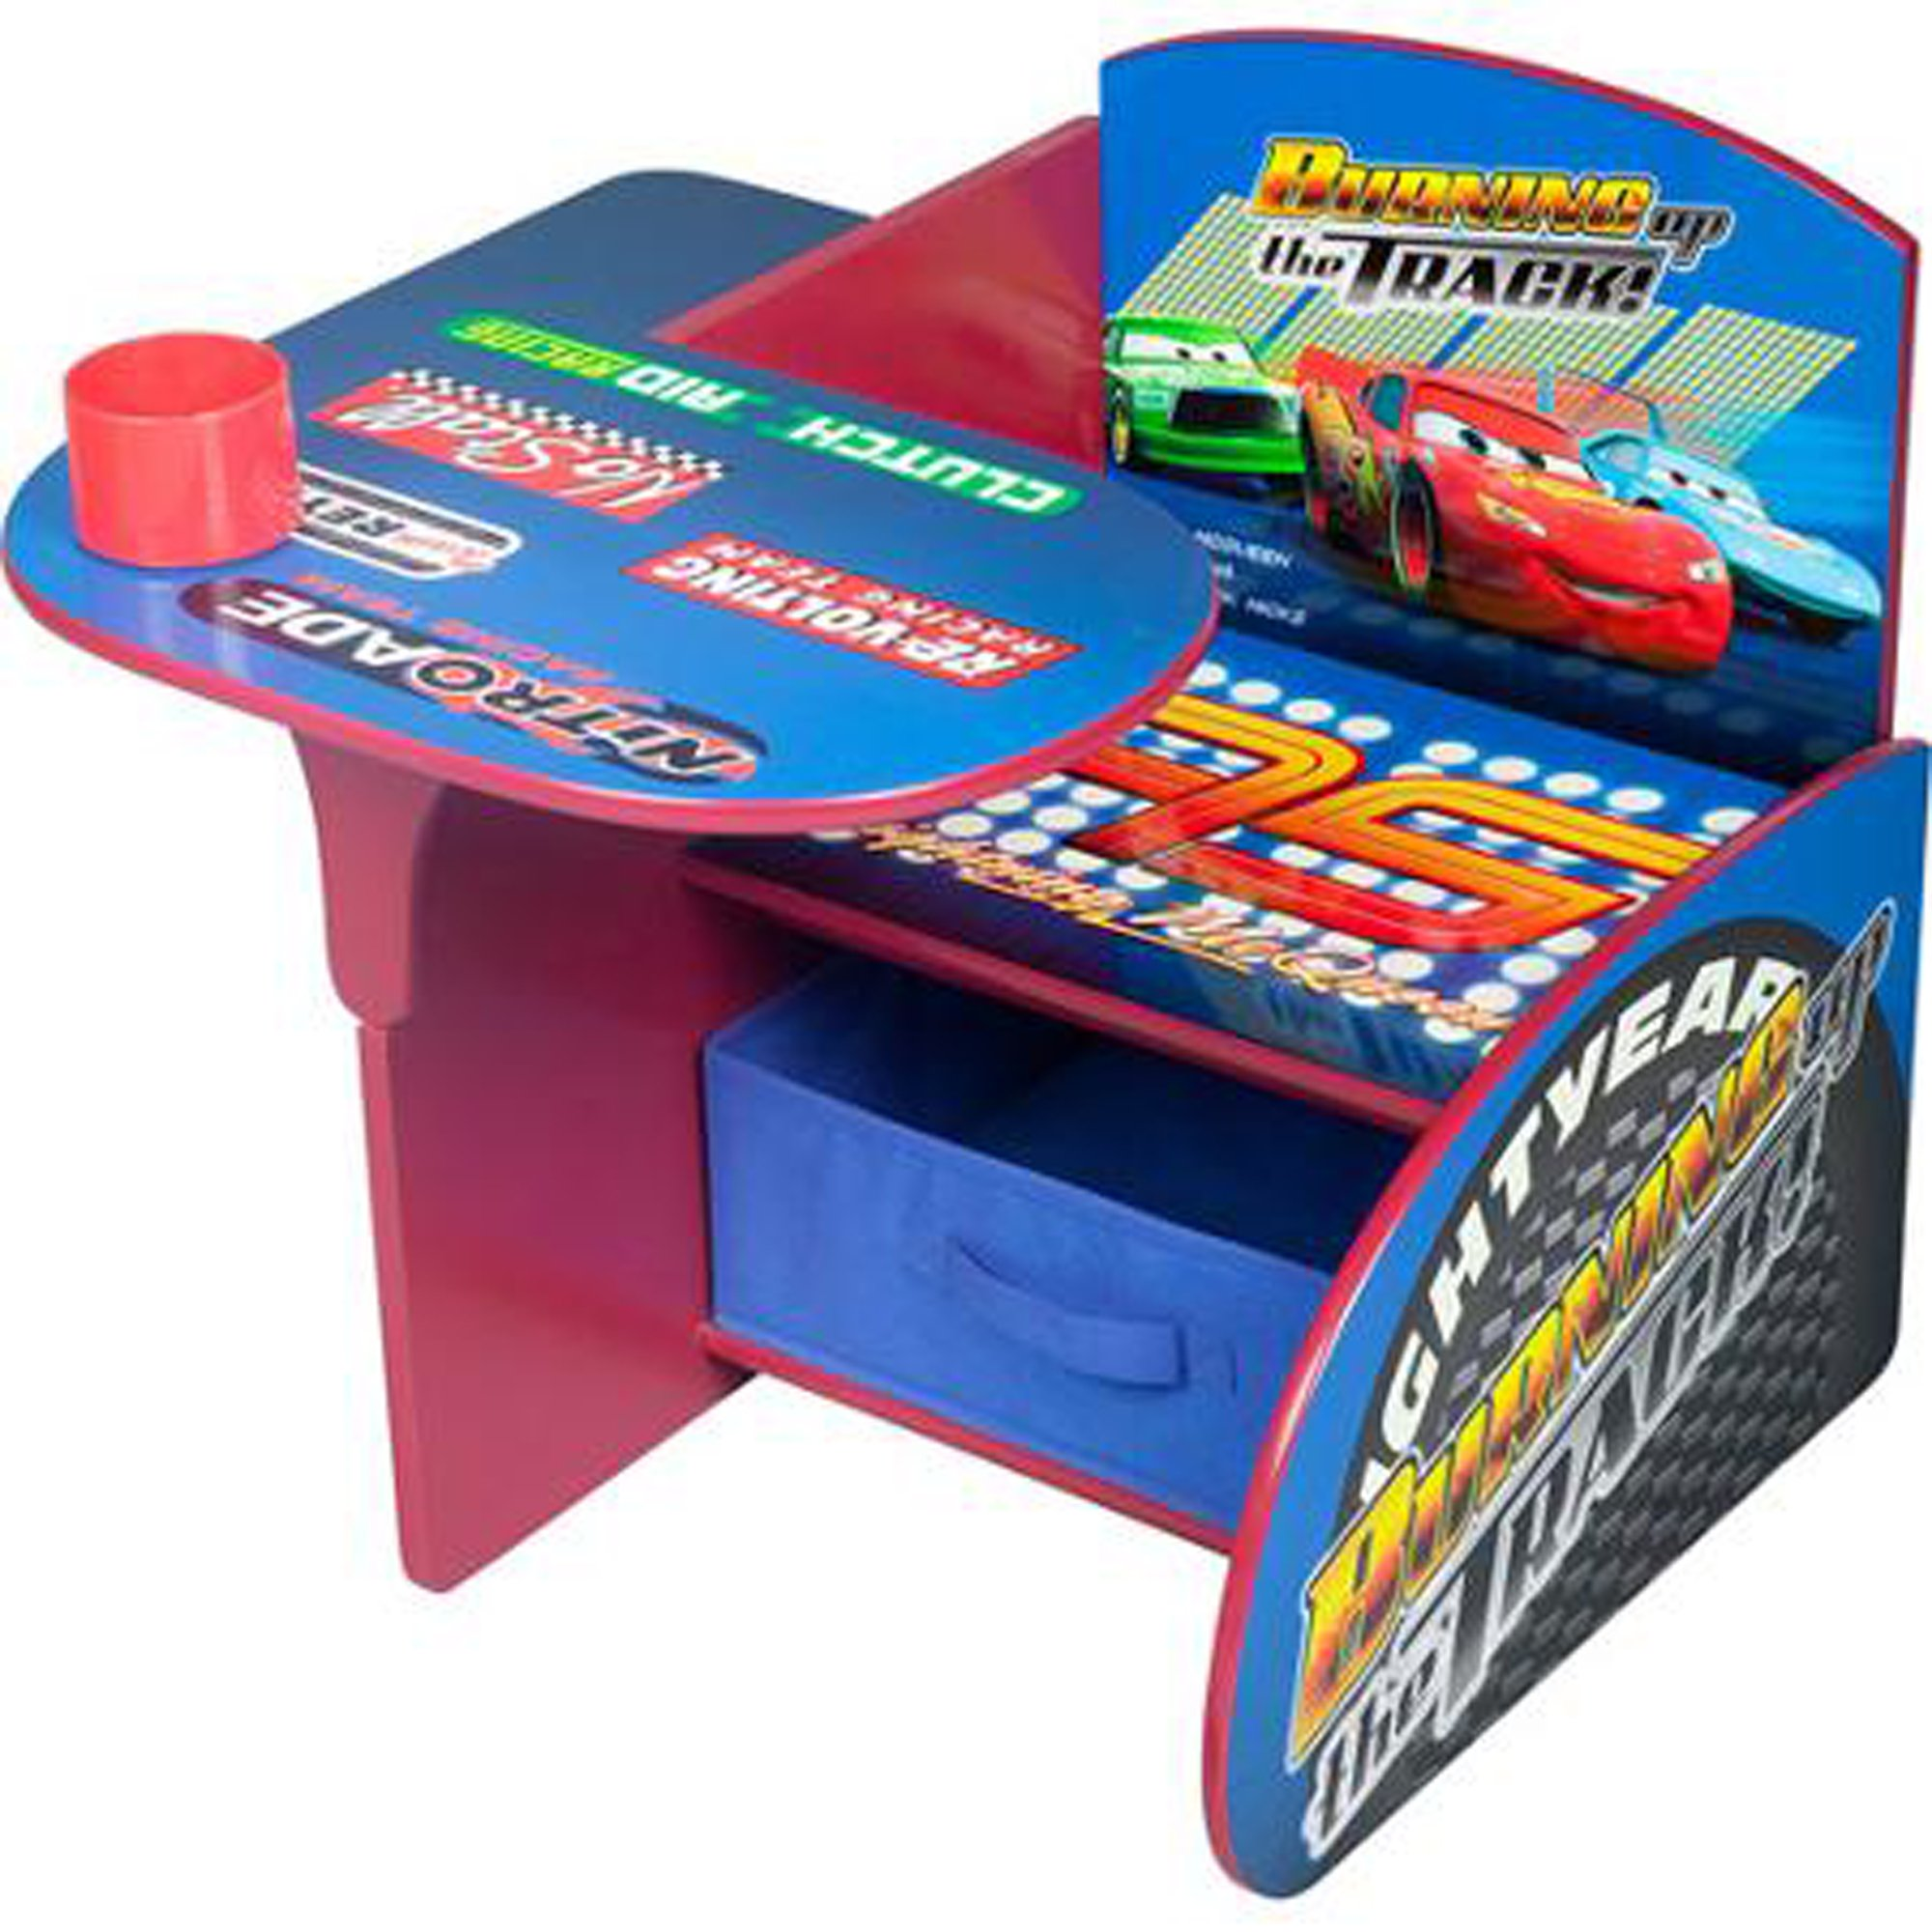 Disney Cars Desk & Chair with Storage Bin Characters Desk Set Fabric Storage Bin Seat Extra Storage Table Desk Chair MDF Construction Assembly Required Sits Low Children Furniture